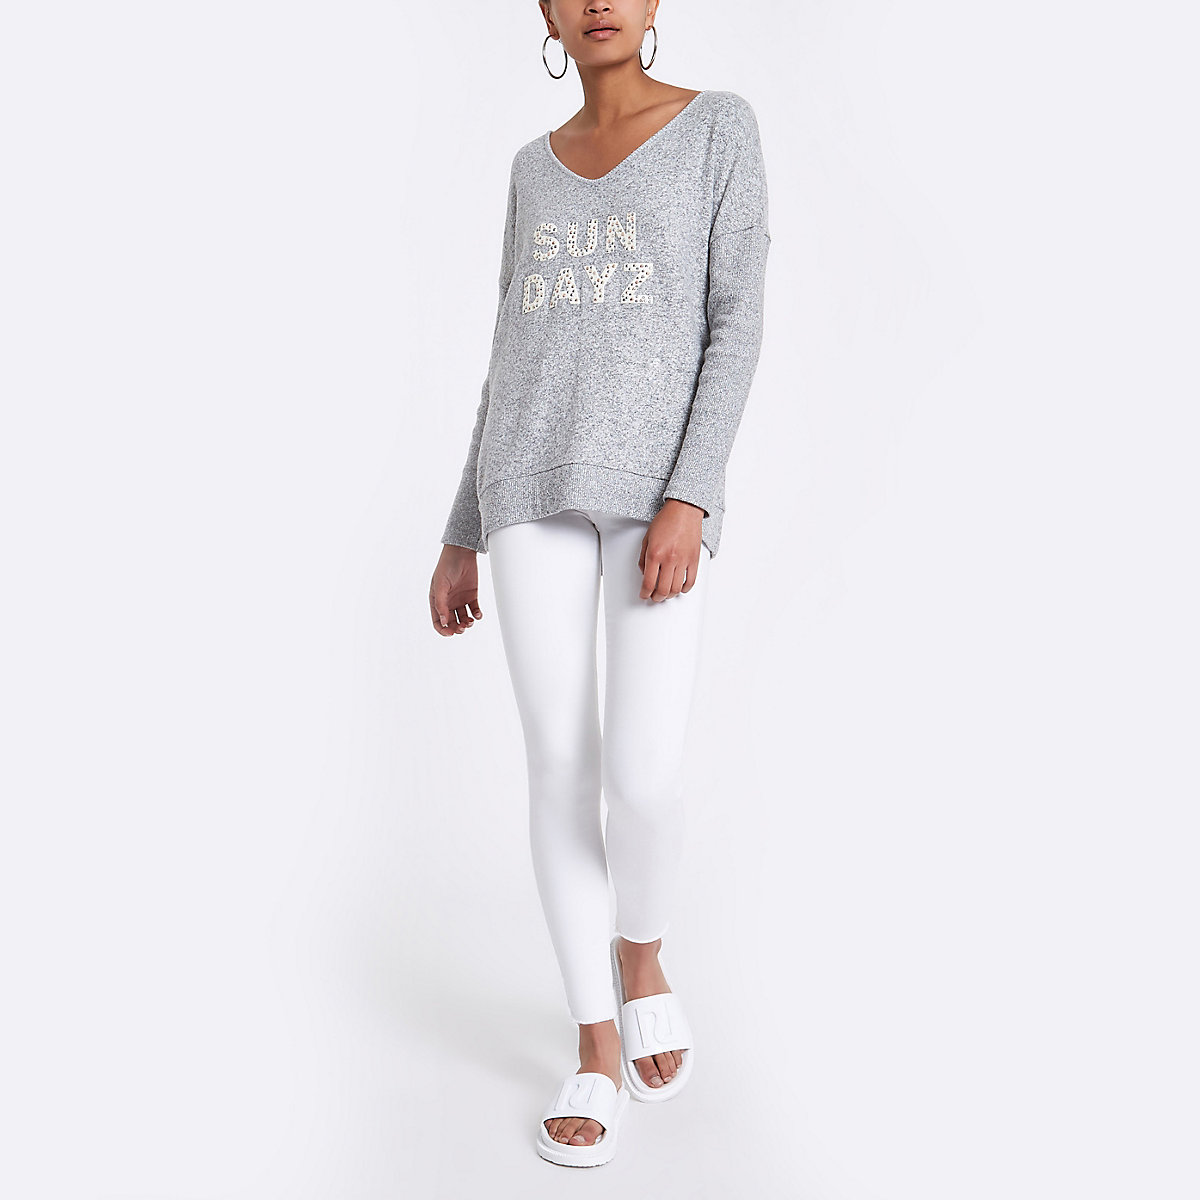 Grey 'Sun dayz' slouch sweater